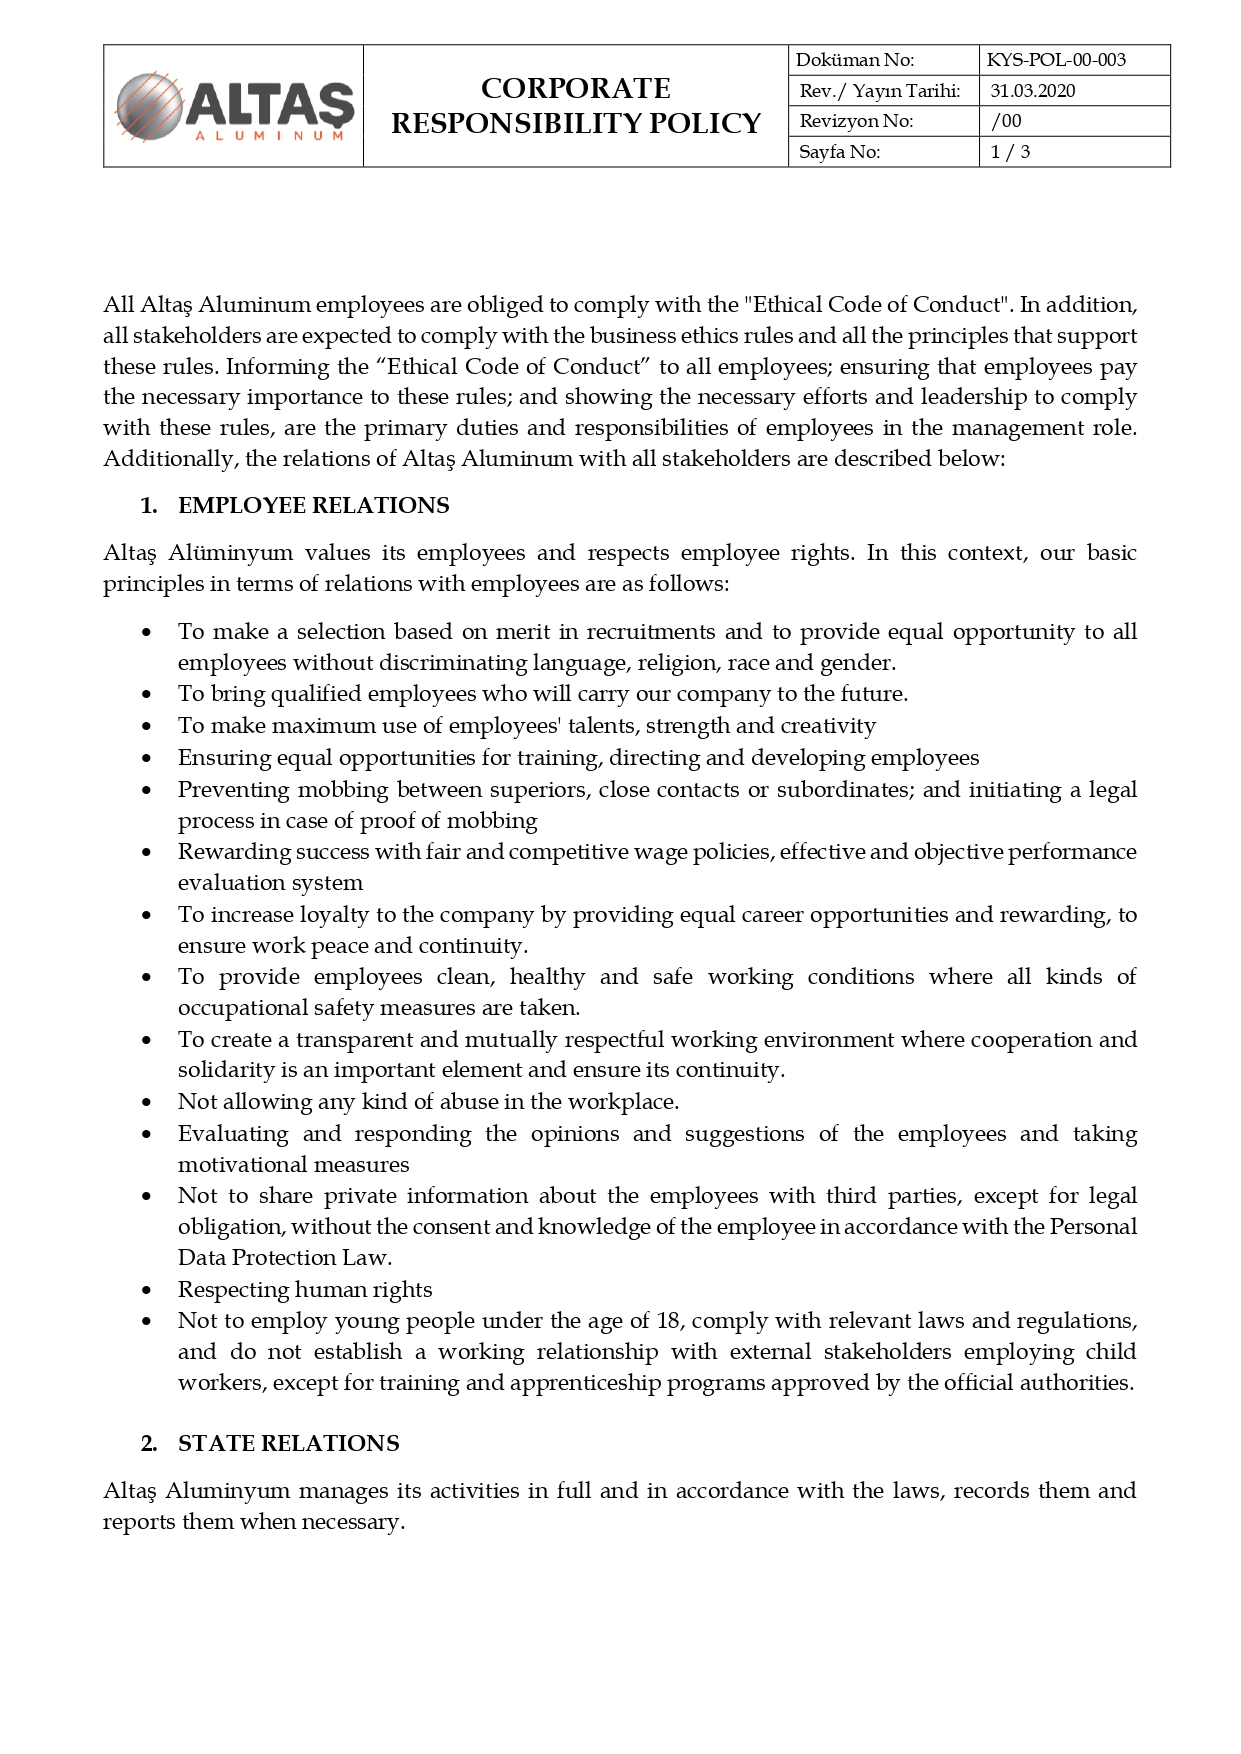 KYS-POL-00-003 CORPORATE RESPONSIBILITY POLICY_page-0001